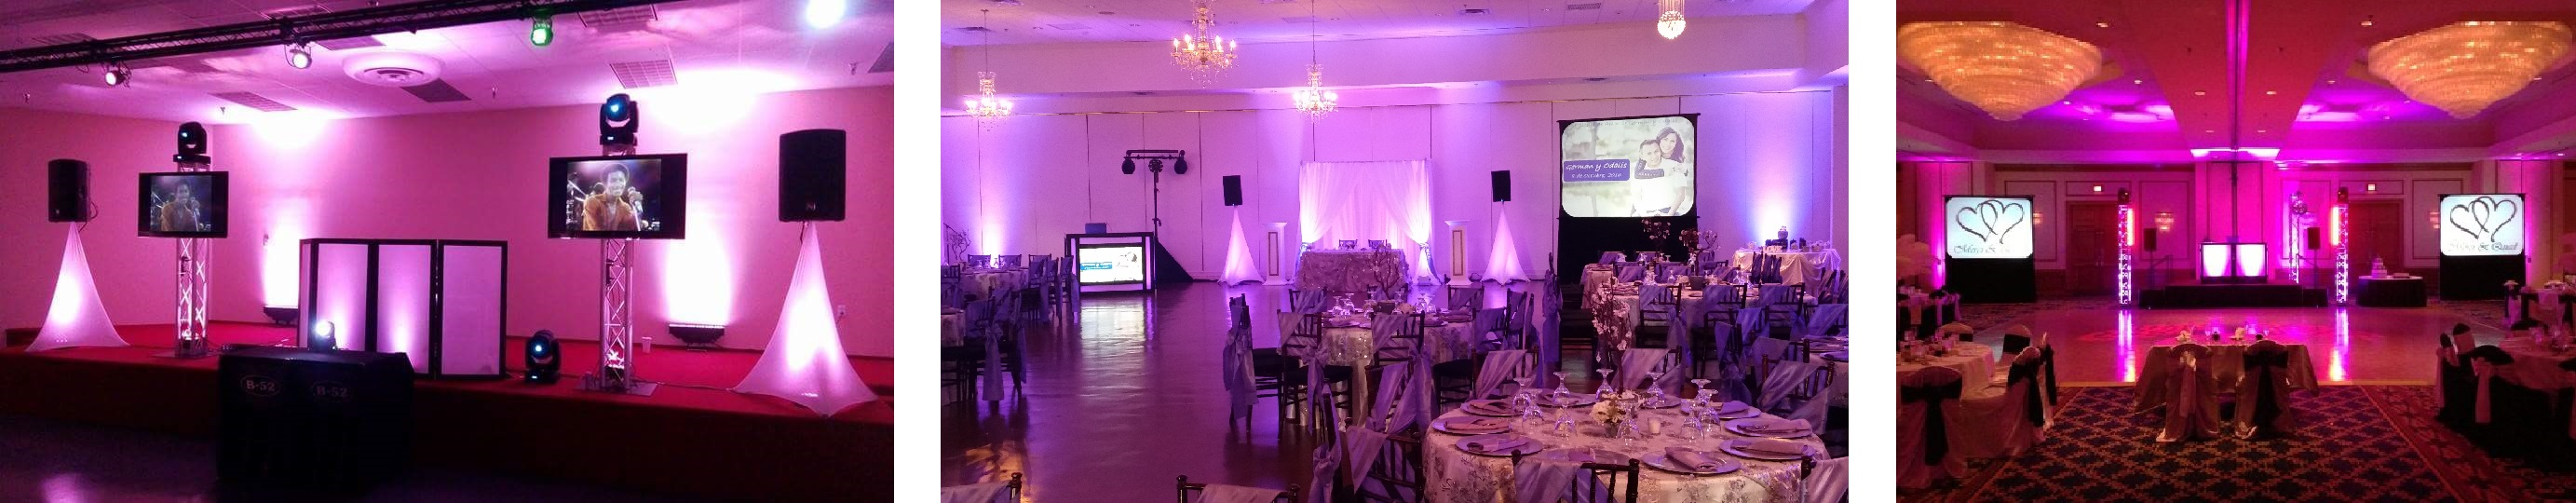 Houston Weddings, Weddings in Houston, Houston Audio Visual, Video Projection, Rear Screen Projection, Flat Screen TVs